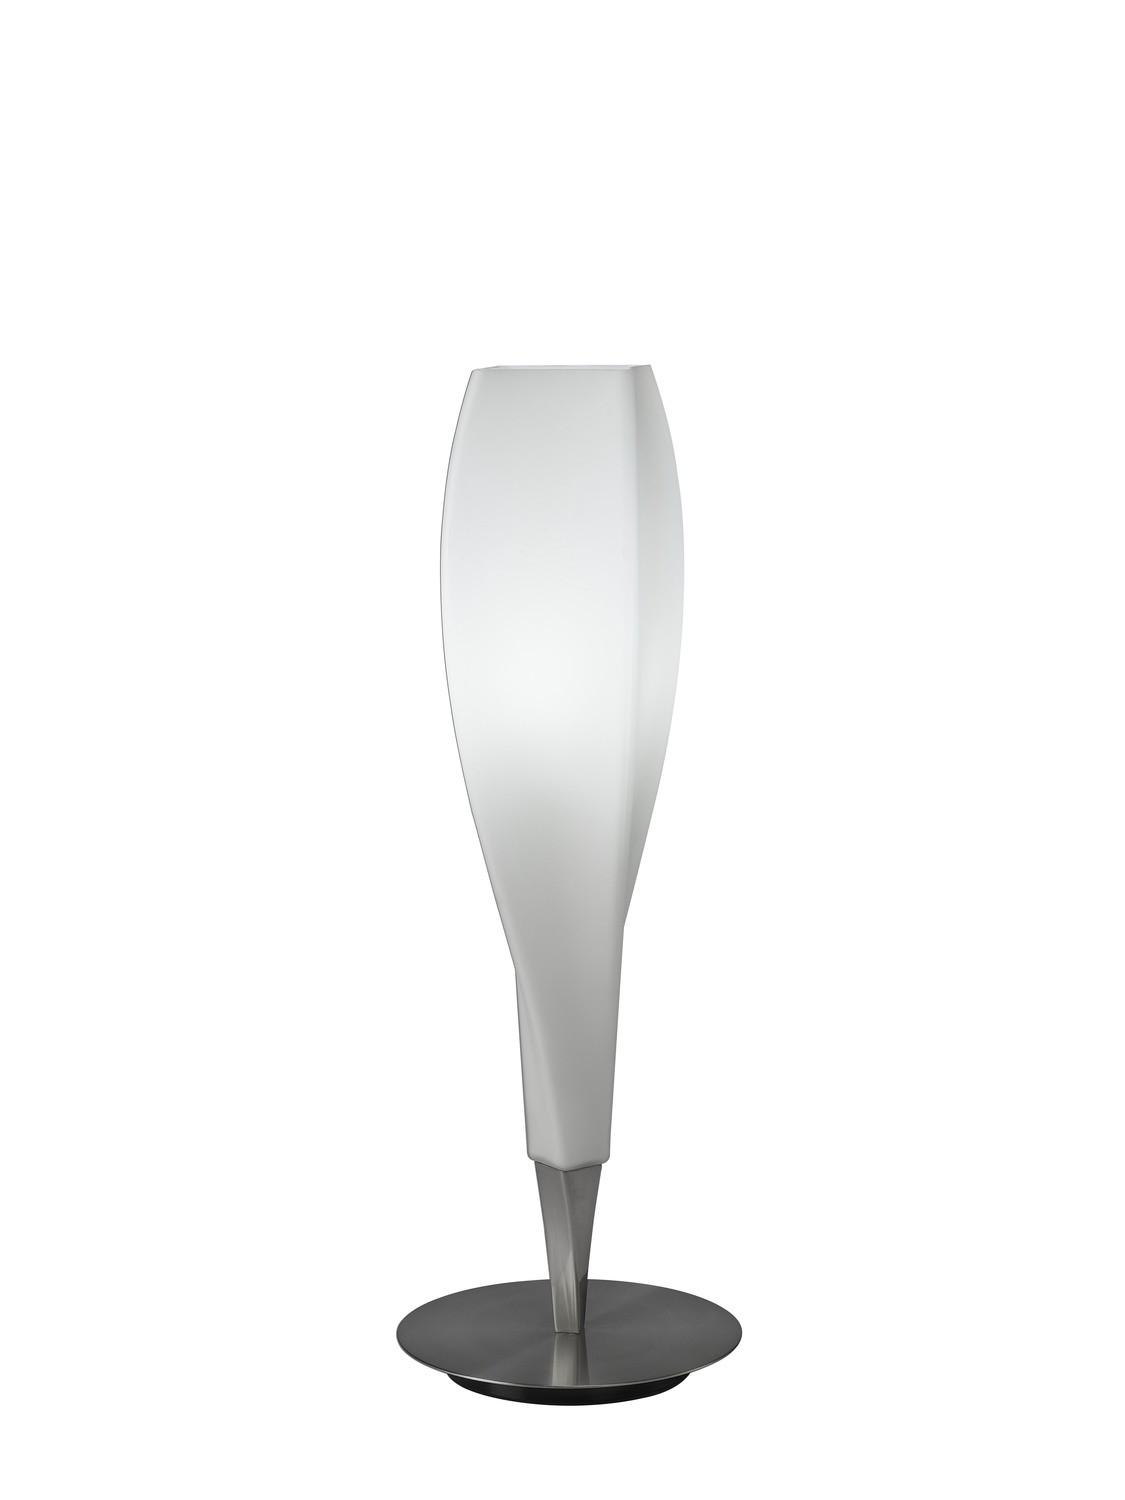 Neo Table Lamp 1 Light E27, Satin Nickel/Frosted White Glass